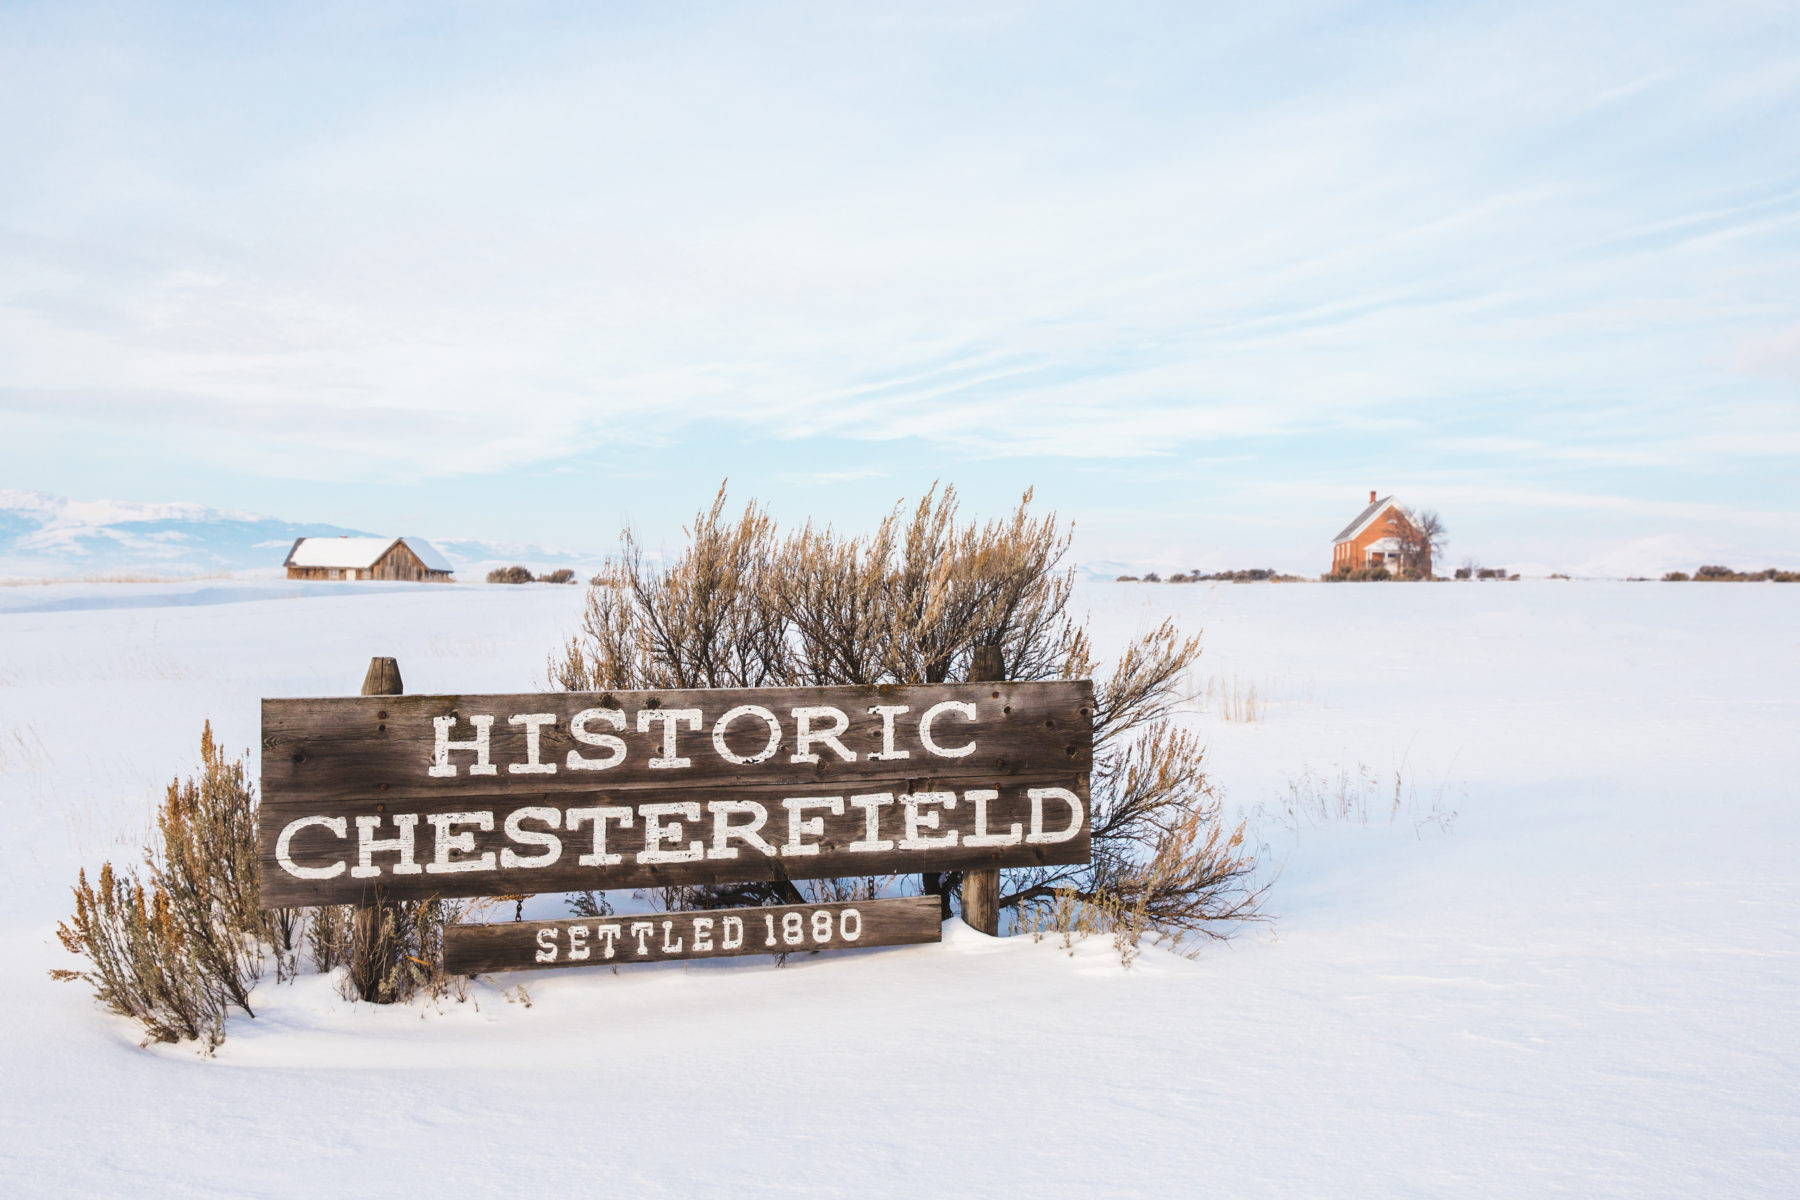 Chesterfield is an abandoned Mormon pioneer town founded in 1880